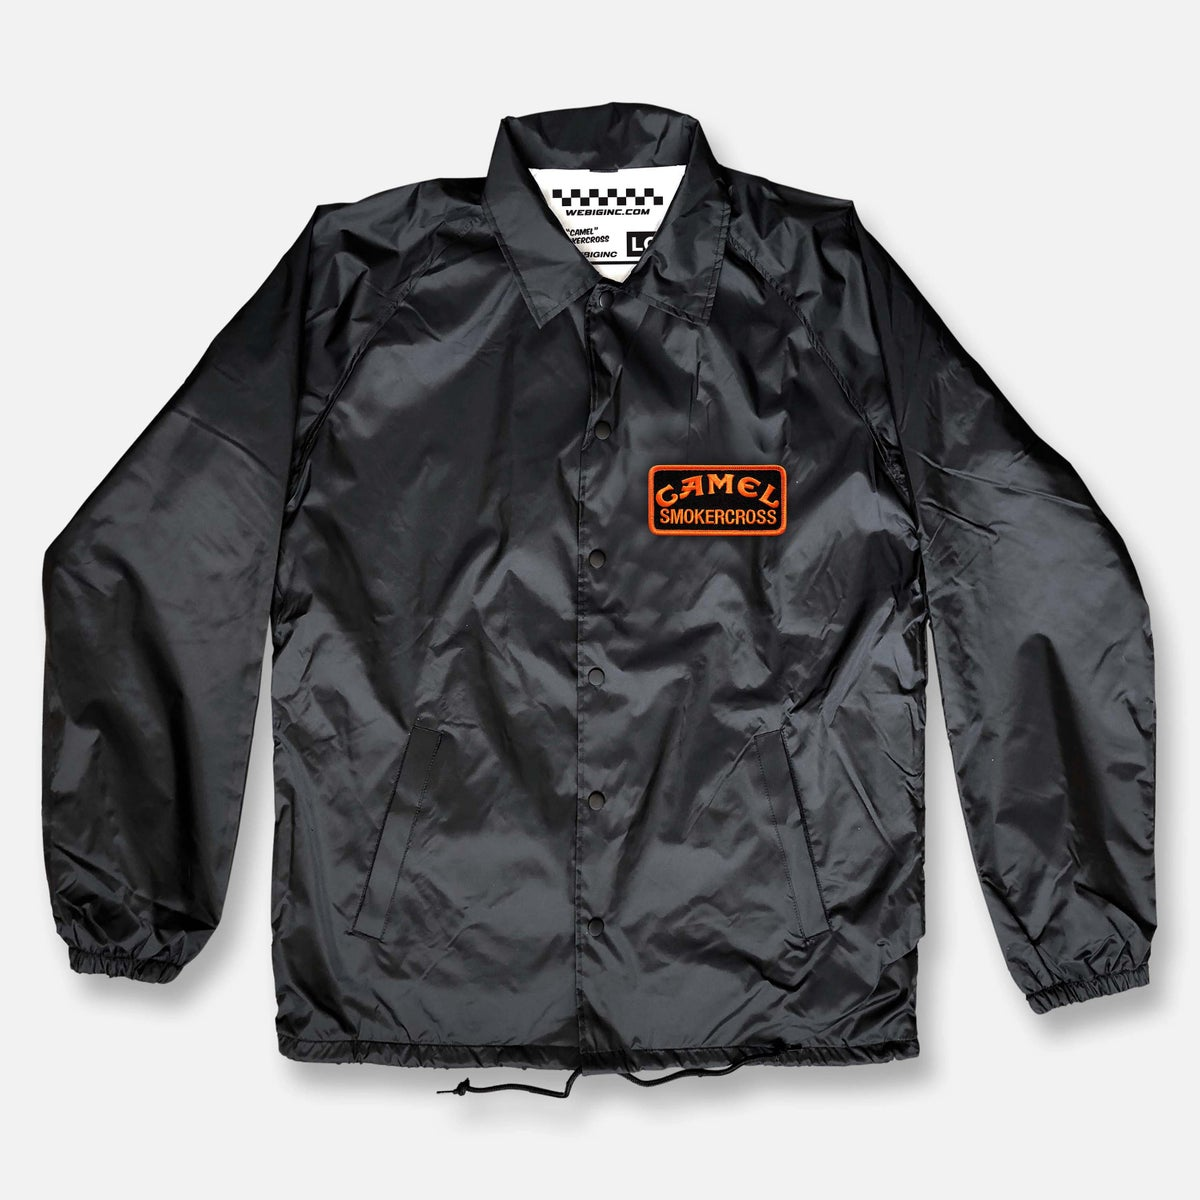 CAMEL+SMOKERCROSS+JACKET_BLACK-ORANGE.jpg